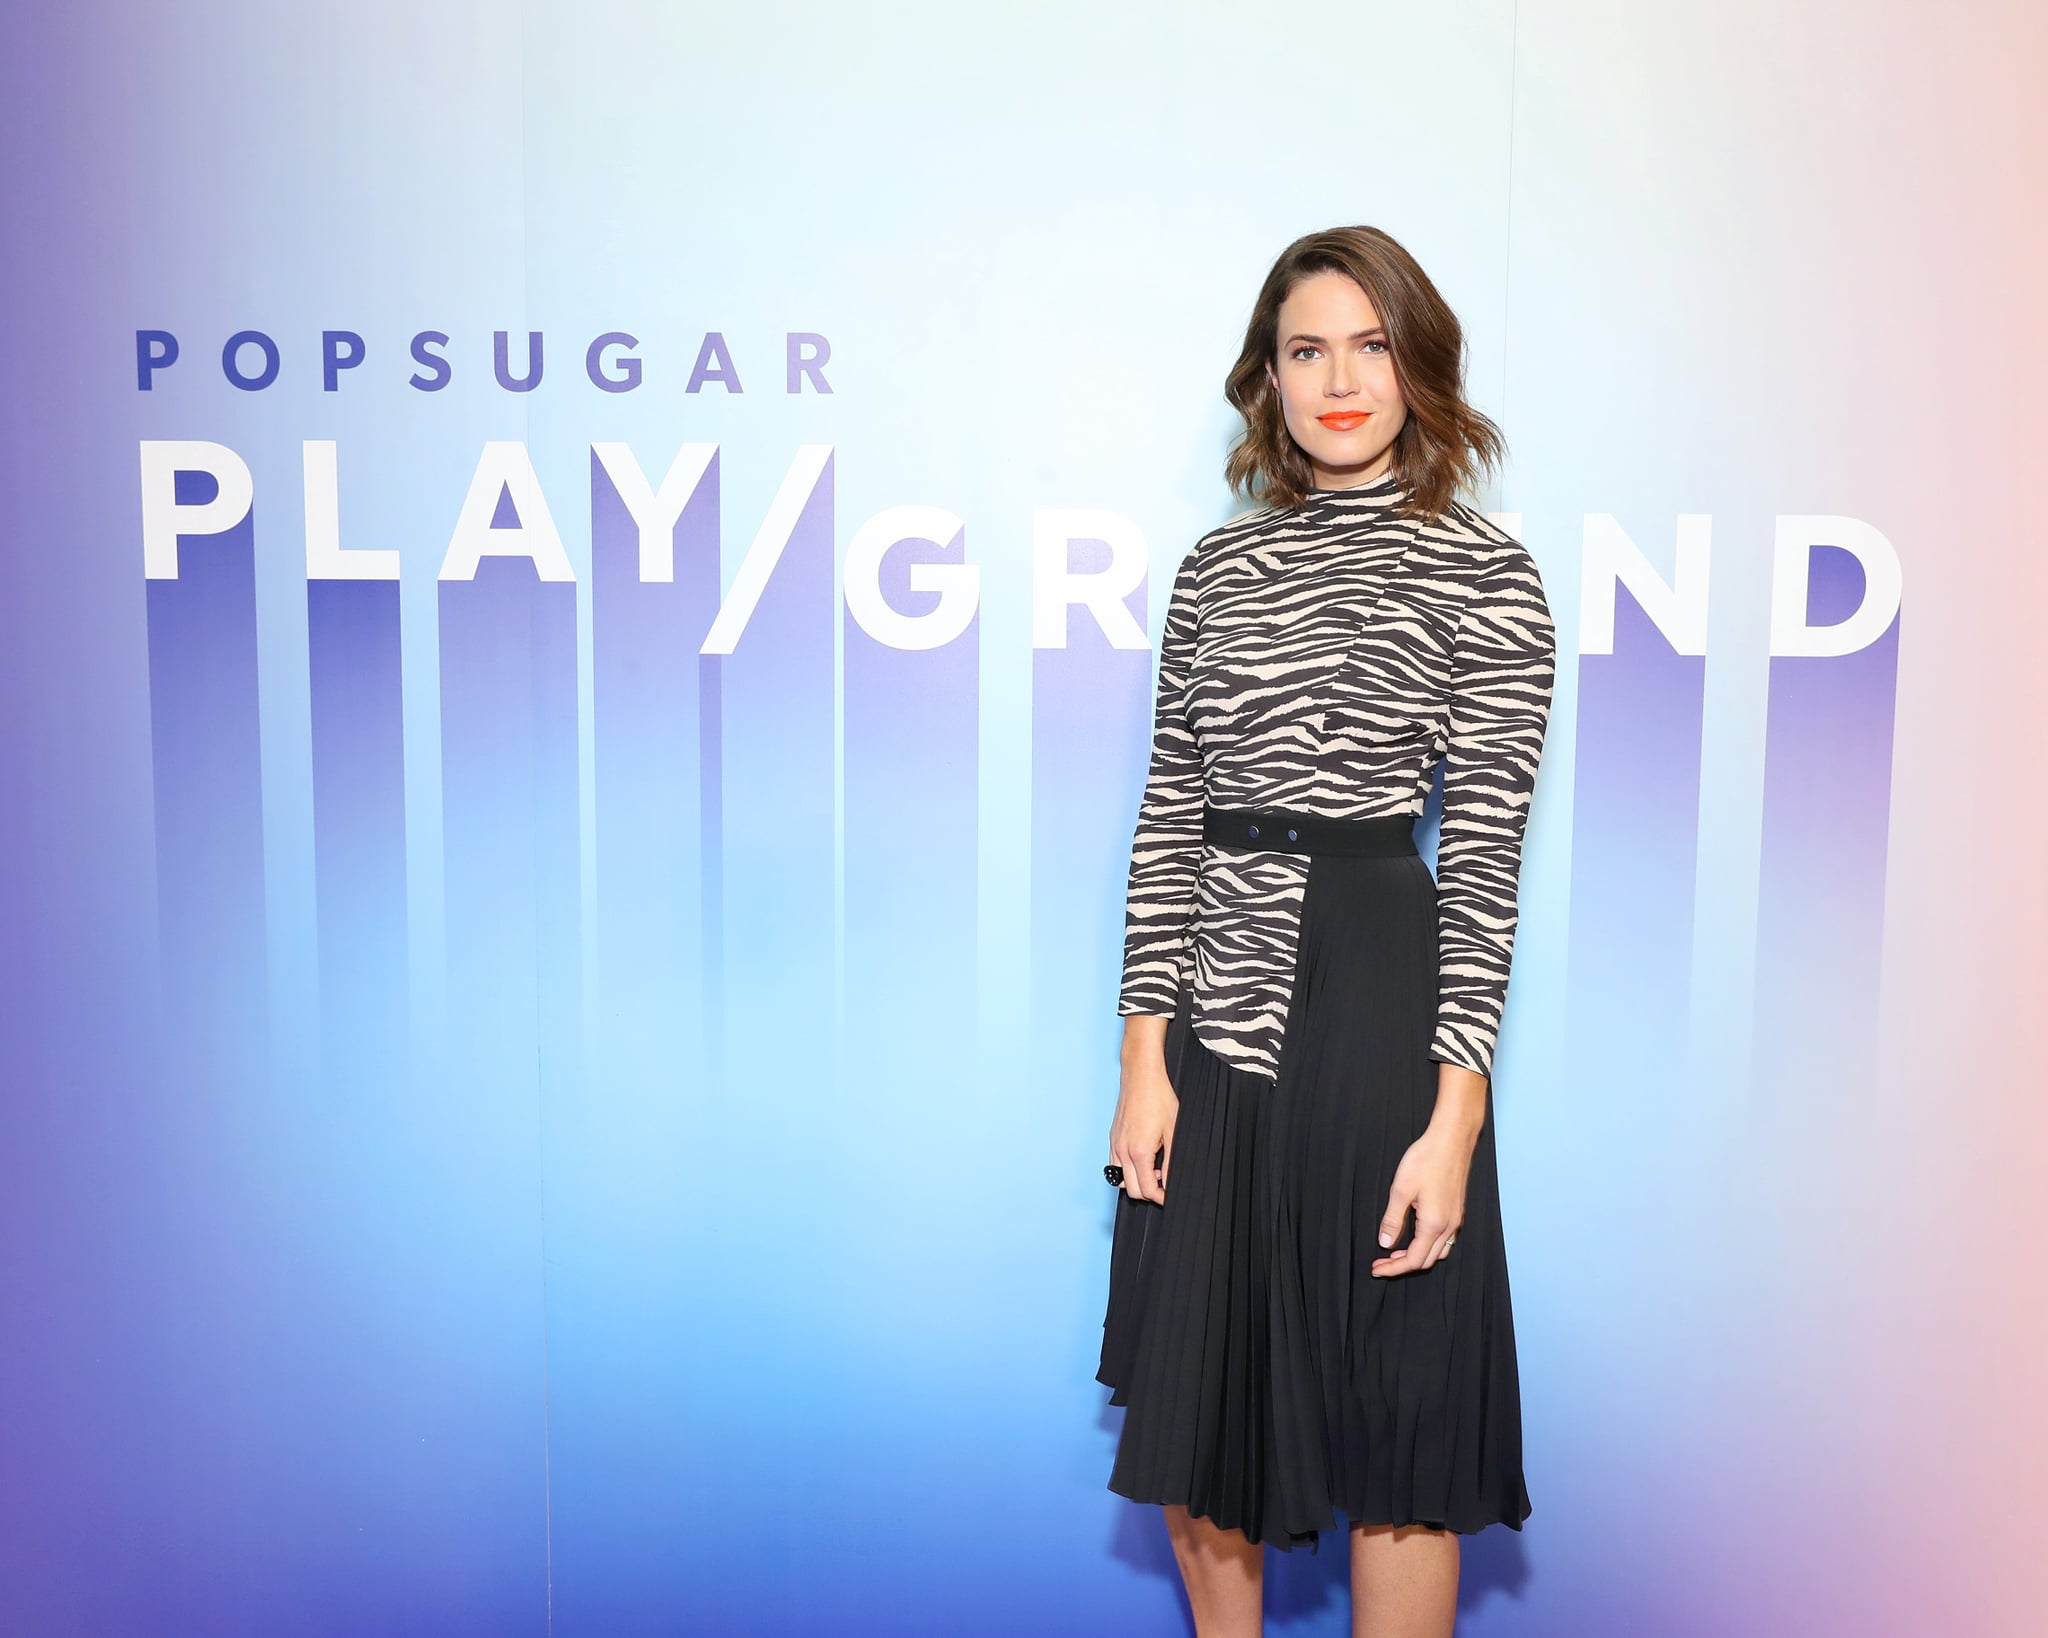 NEW YORK, NEW YORK - JUNE 22: Mandy Moore attends the POPSUGAR Play/ground at Pier 94 on June 22, 2019 in New York City. (Photo by Cindy Ord/Getty Images for POPSUGAR and Reed Exhibitions )